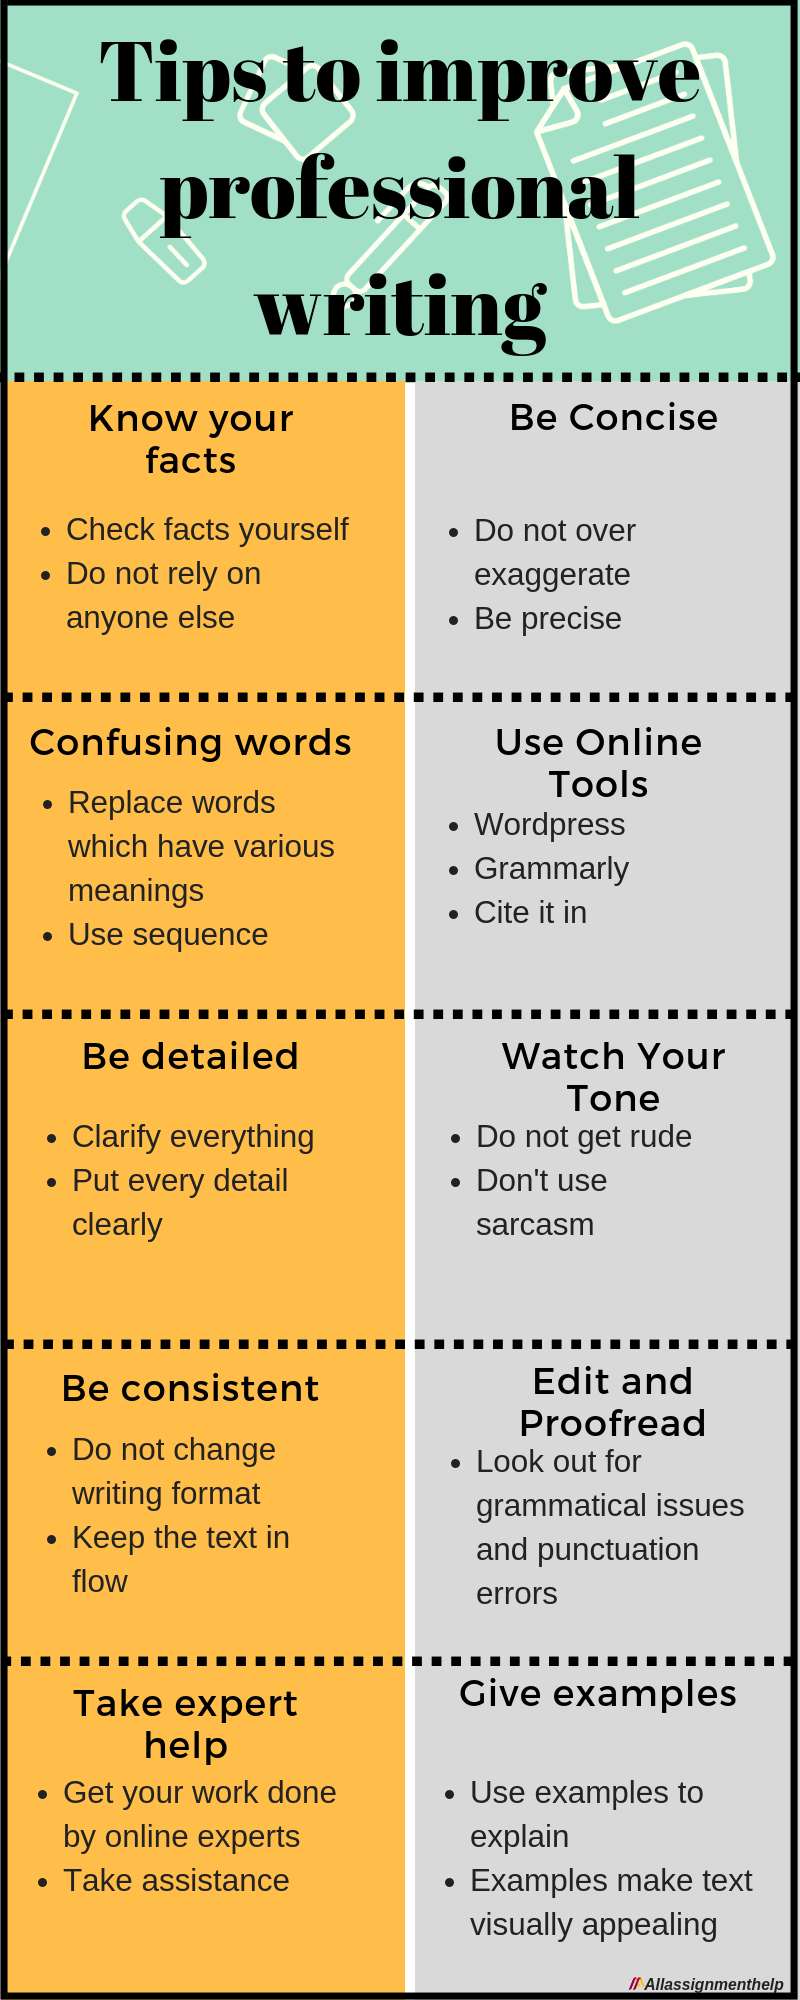 tips to improve professional writing.png